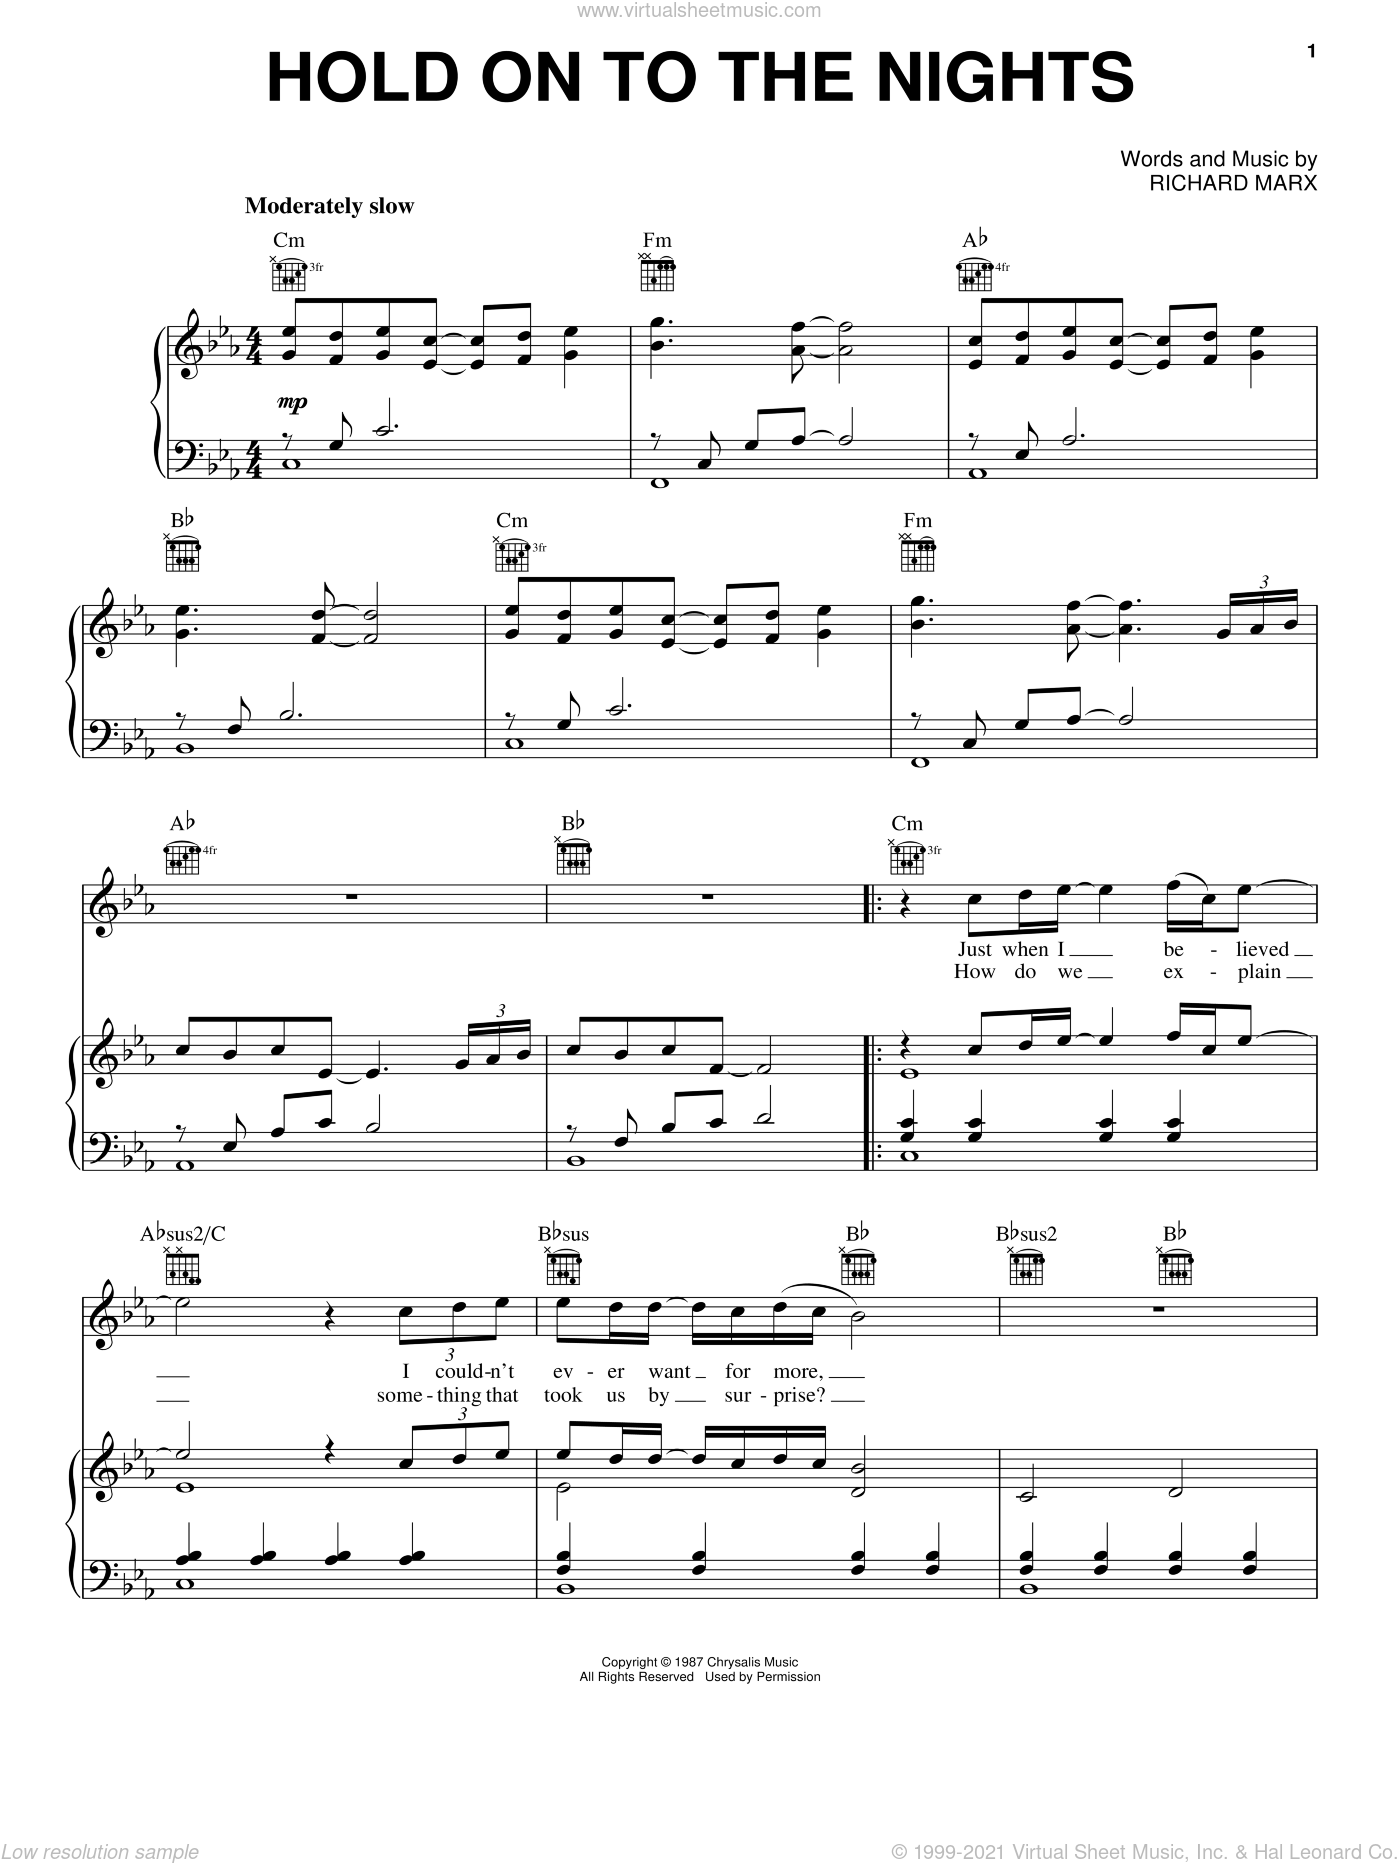 Hold On To The Nights sheet music for voice, piano or guitar by Richard Marx